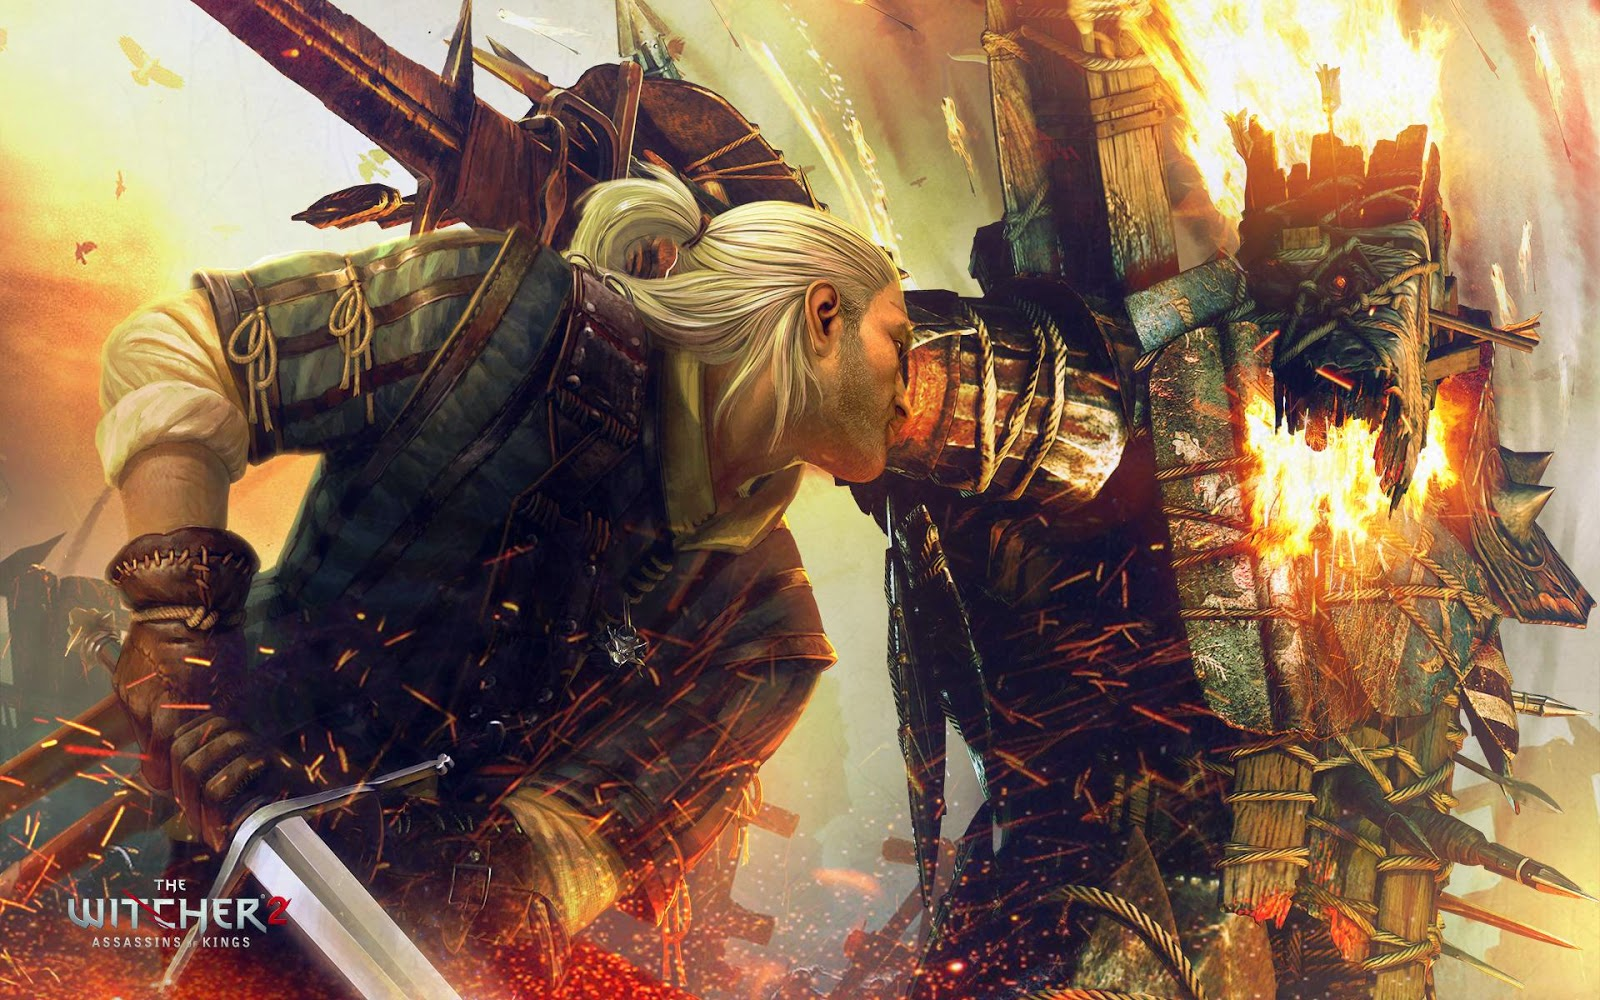 The Witcher 2 for Linux released